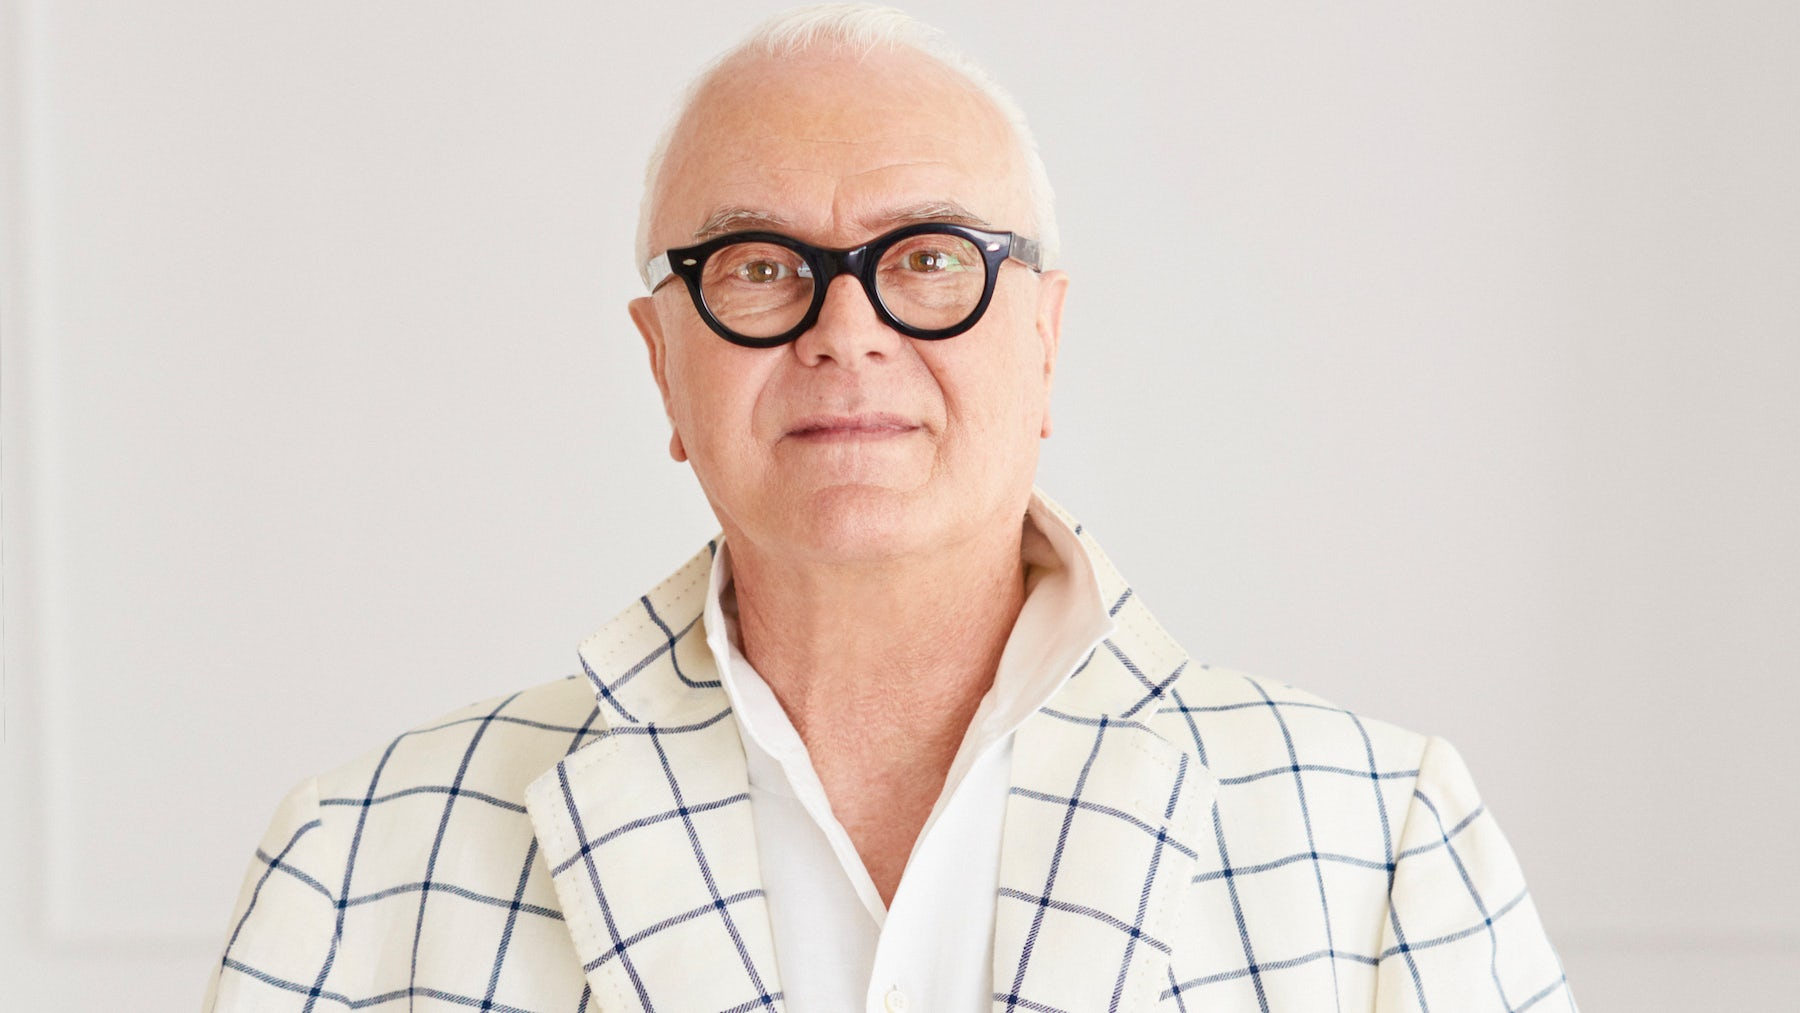 Manolo Blahnik | Source: Courtesy